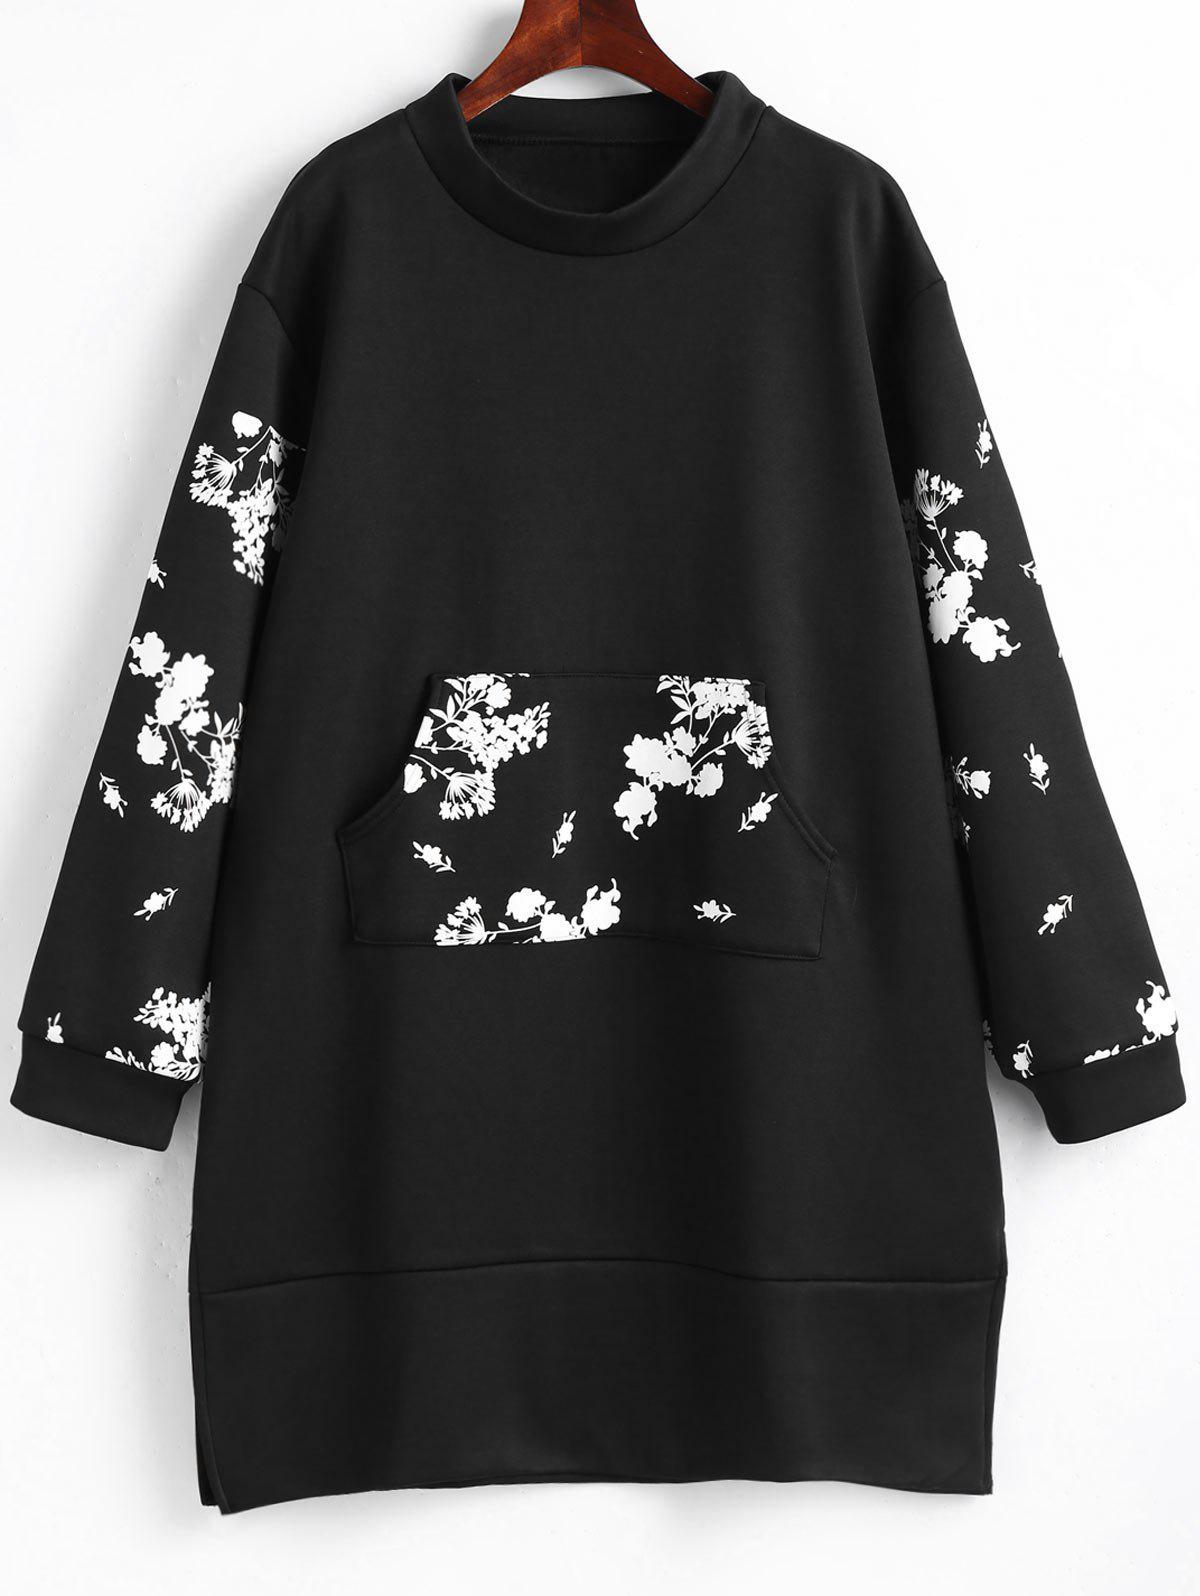 Floral Front Pocket Plus Size Sweatshirt Dress - BLACK 4XL